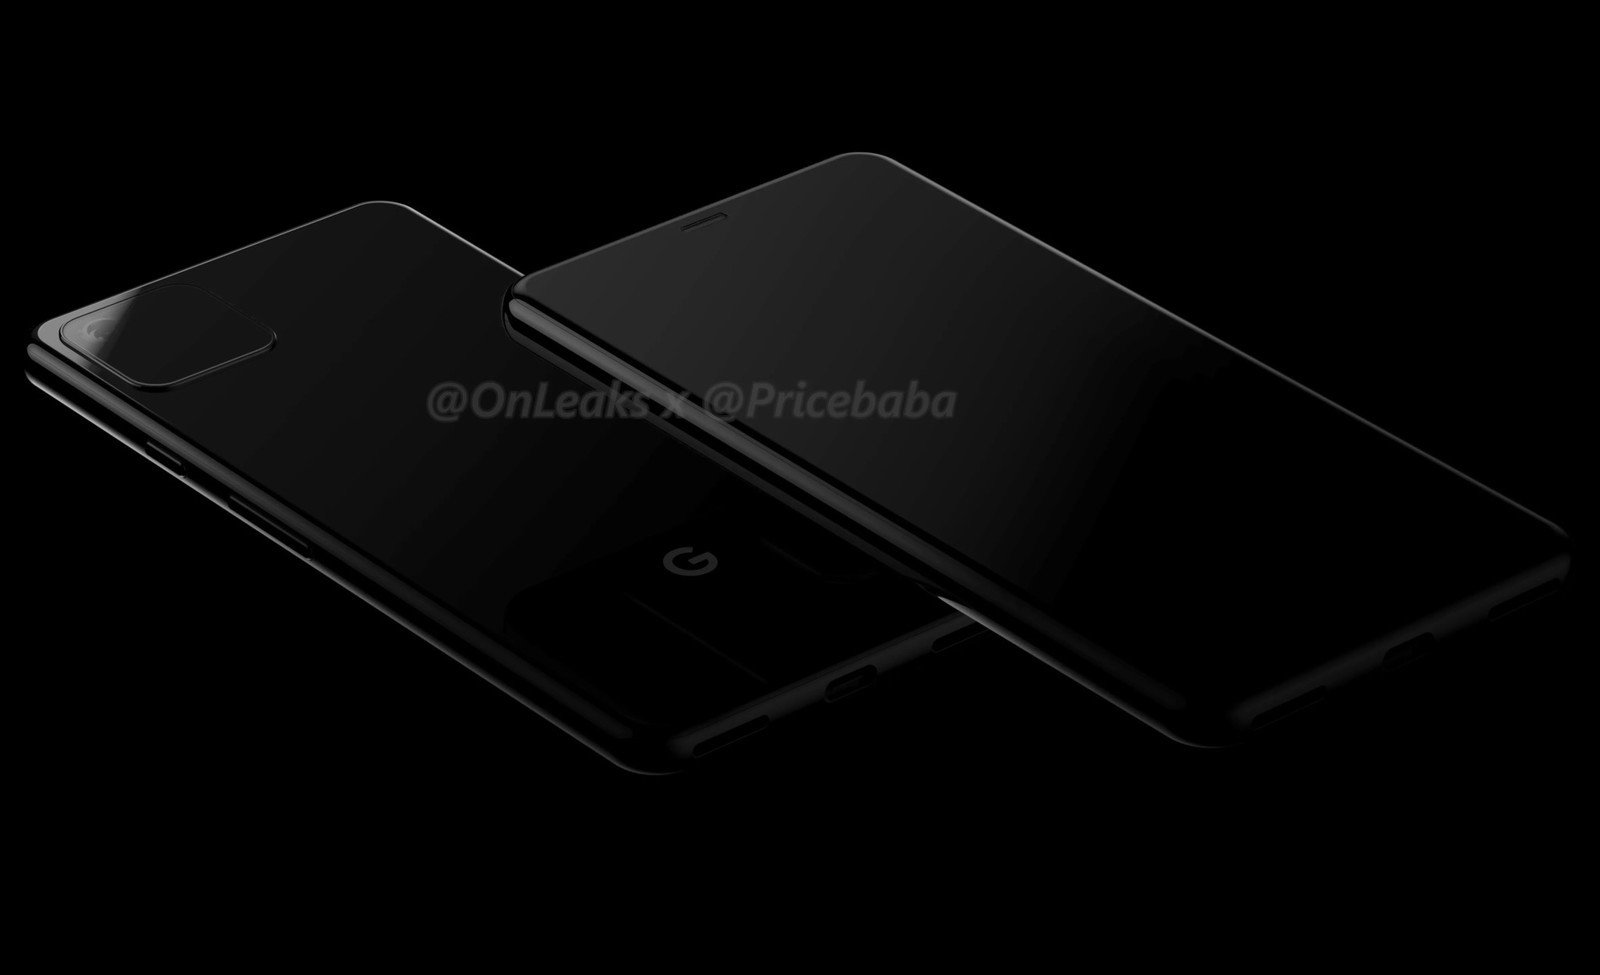 And So The Pixel 4 Leaks Begin